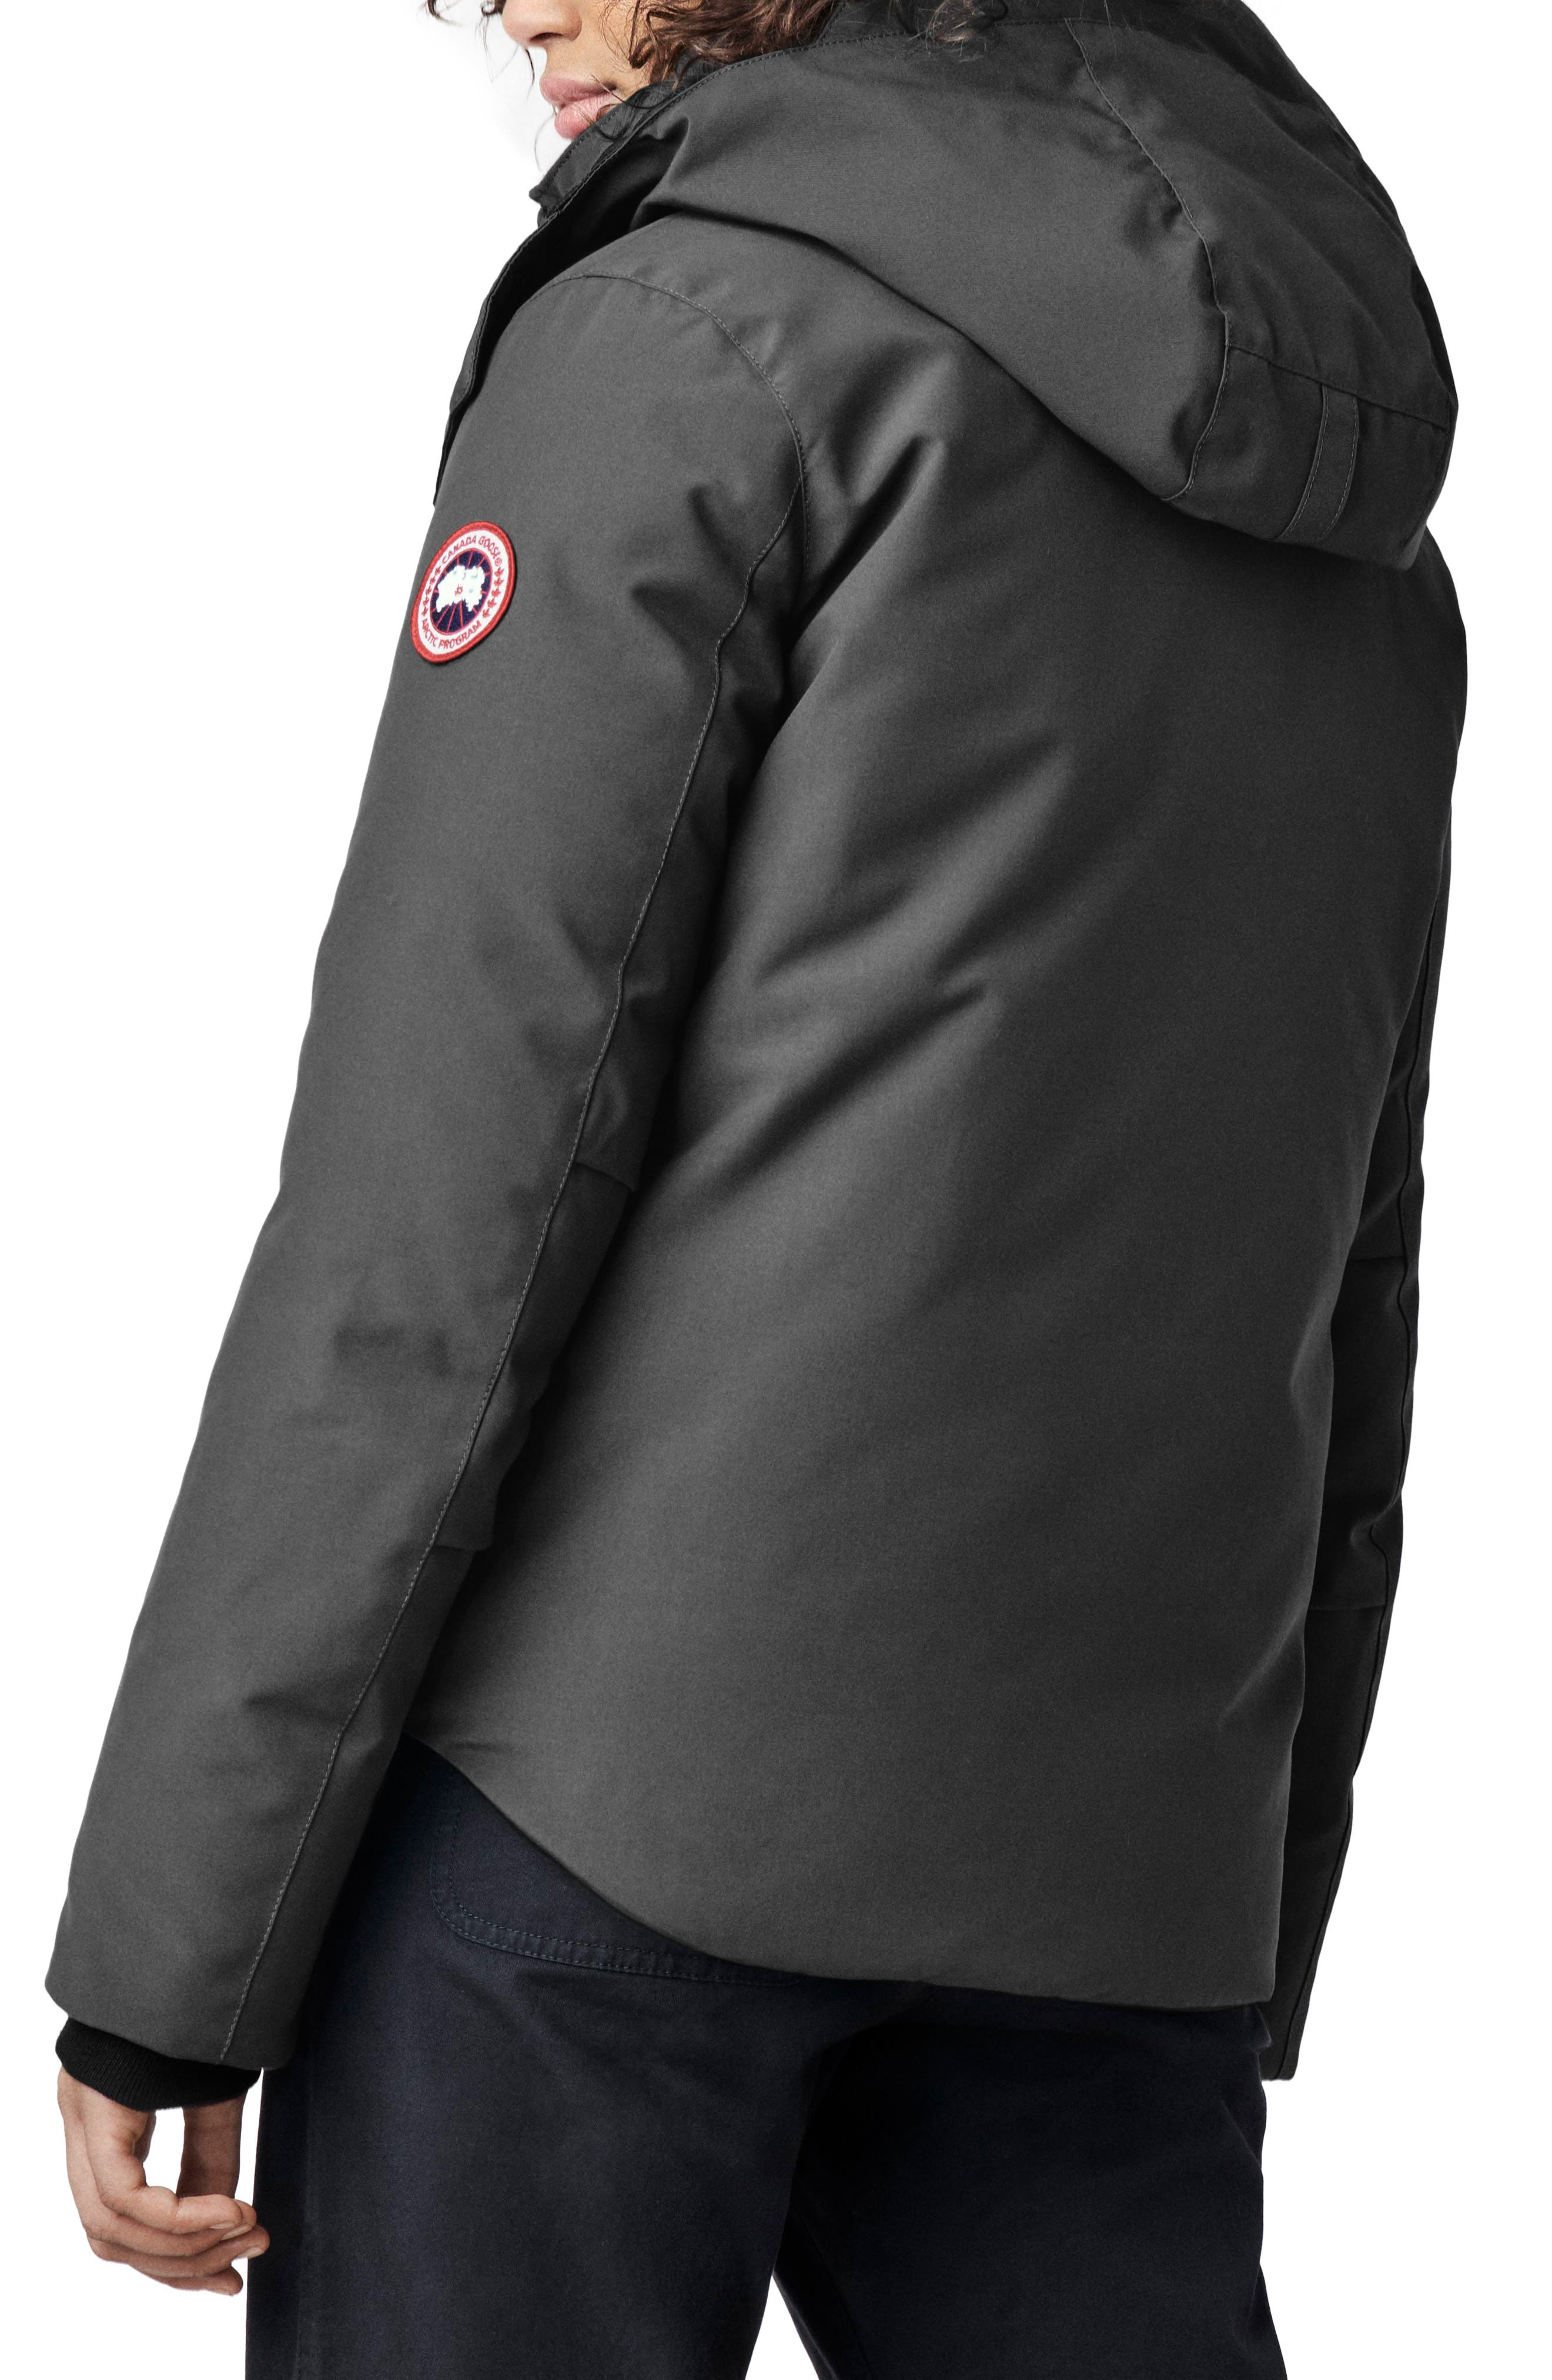 CANADA GOOSE, Blakely Water Resistant 625 Fill Power Down Parka, Alternate thumbnail 2, color, GRAPHITE